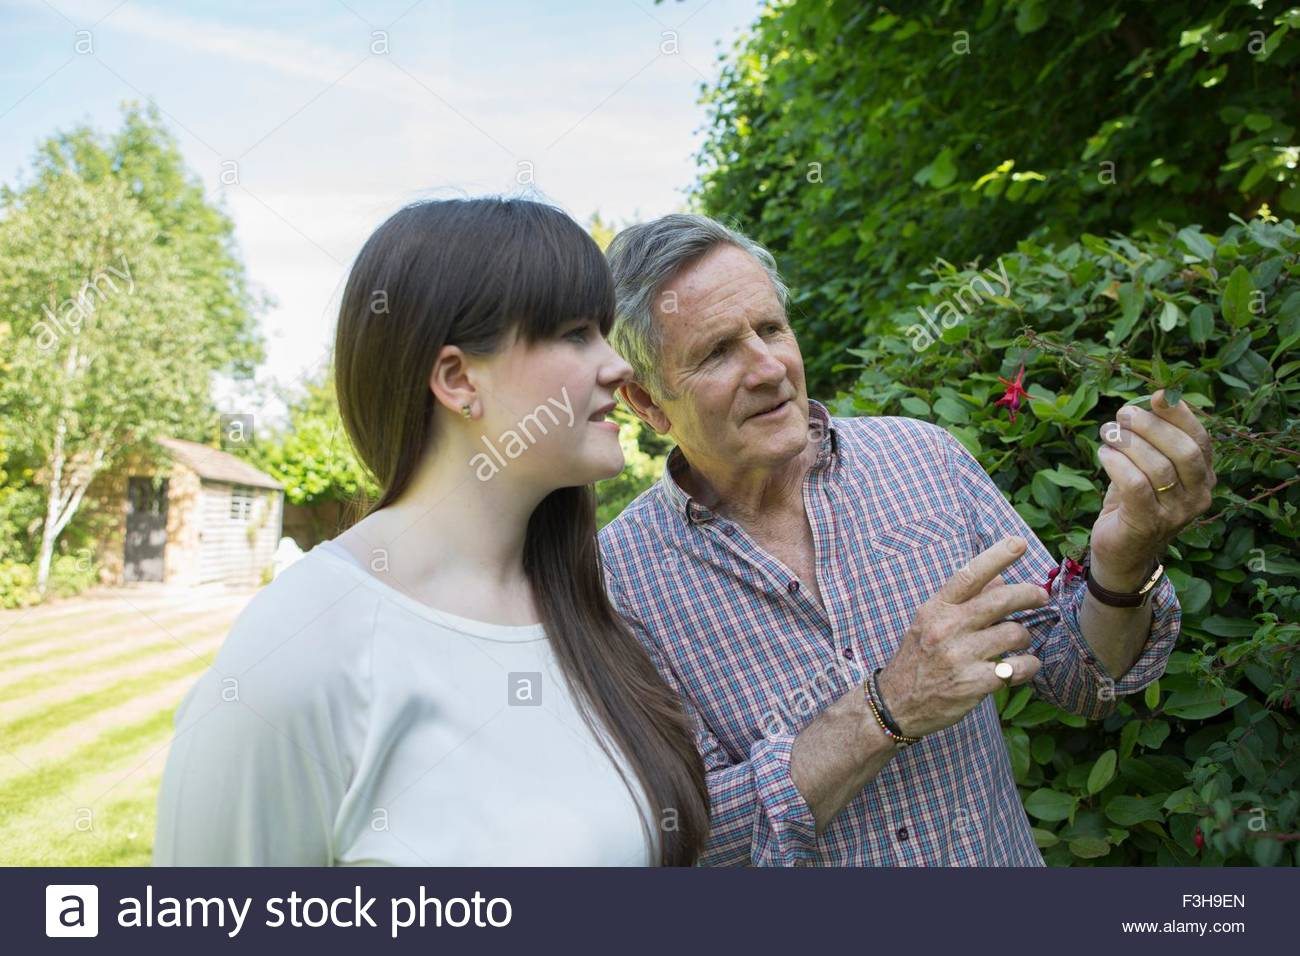 Father looking at flowers in garden with grown daughter - Stock Image